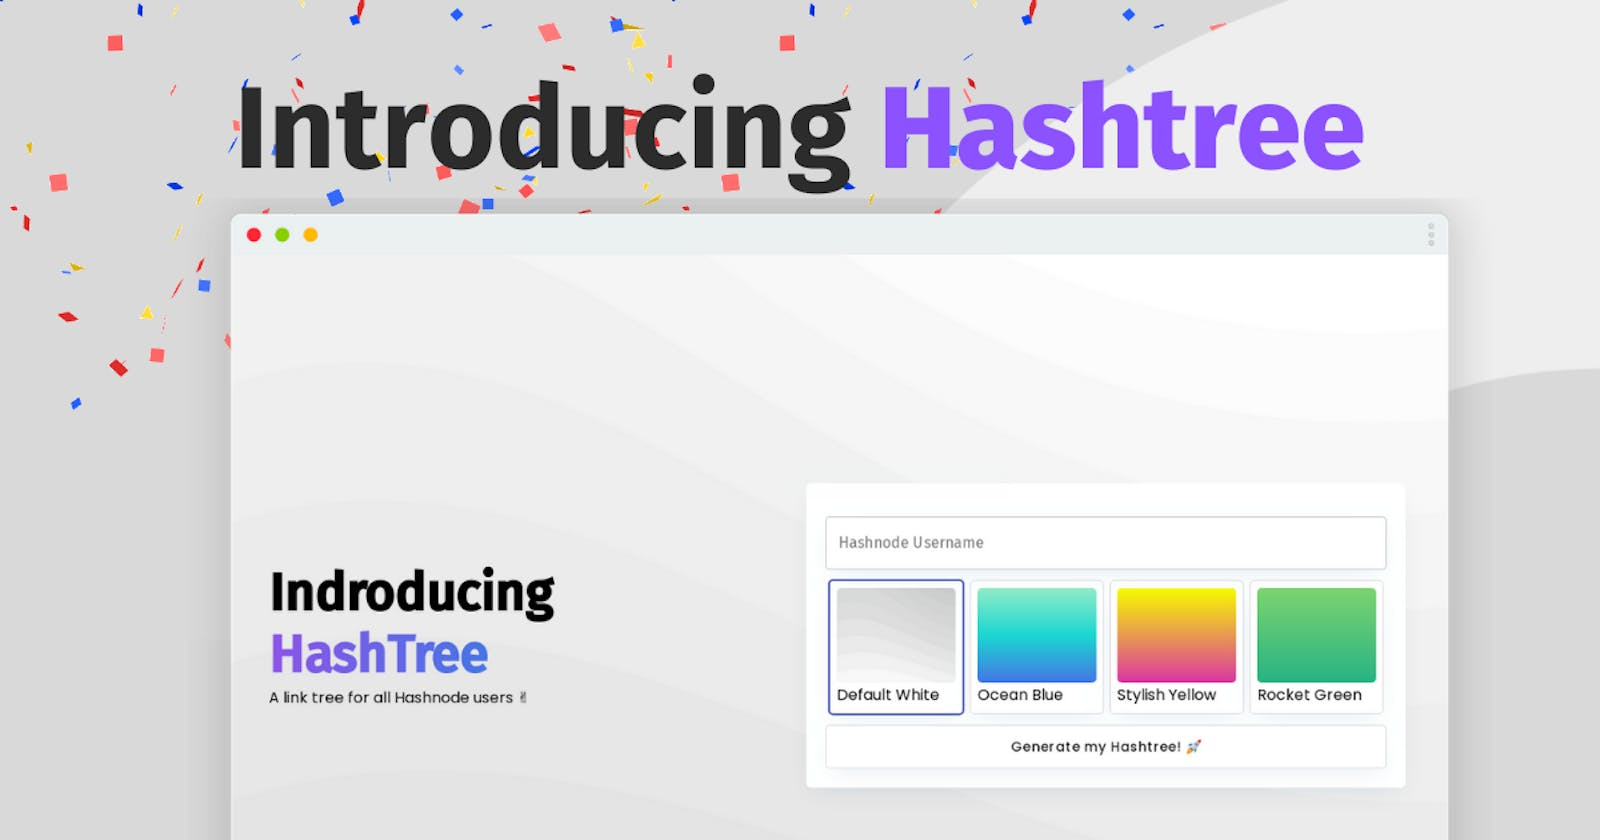 Introducing Hashtree - Link tree for all hashnode users ✌